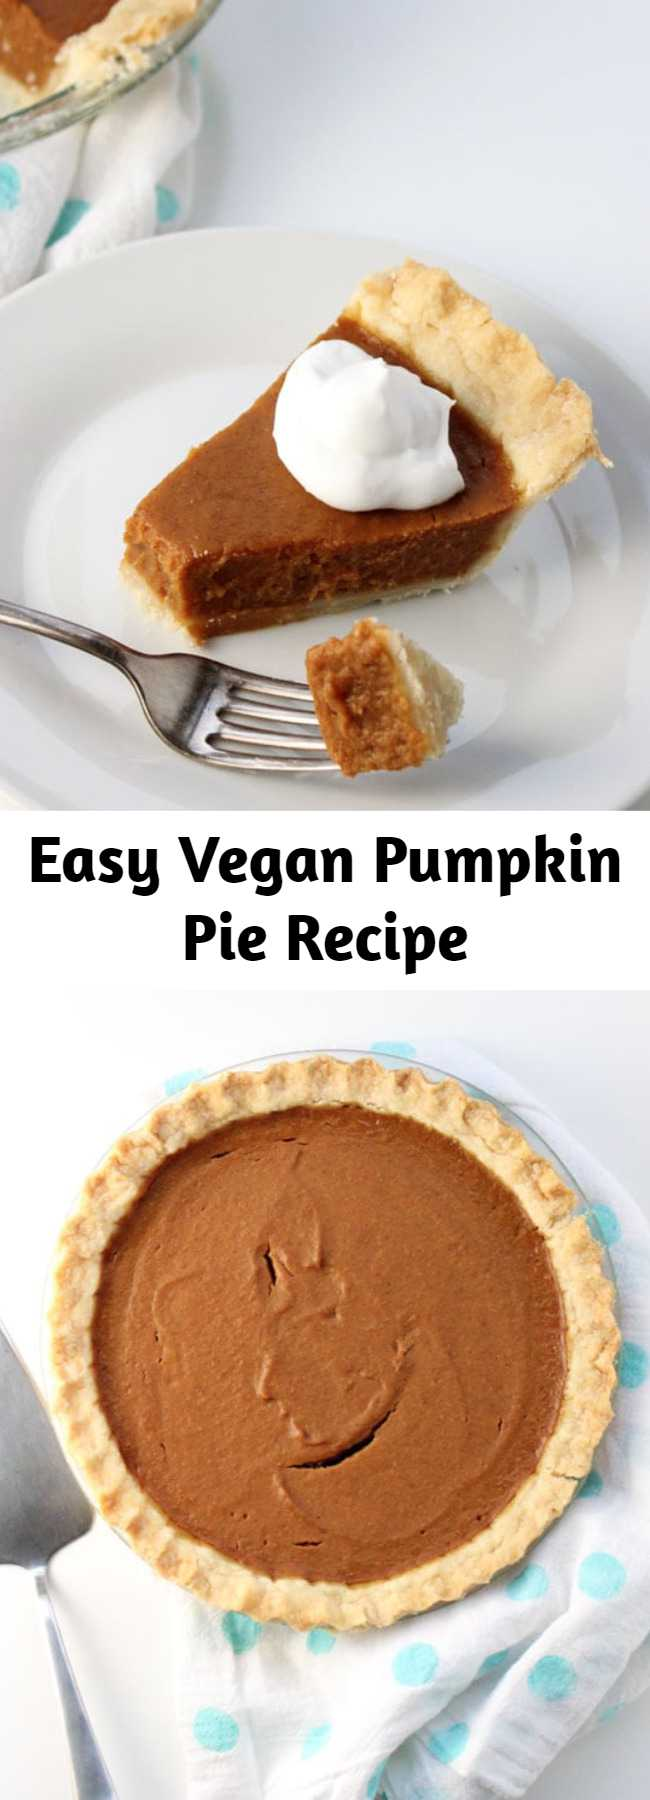 Easy Vegan Pumpkin Pie Recipe - Just 9 easy ingredients, combine in a blender, pour into a pie shell, and bake. Done! Tastes best when made ahead of time making it a stress-free Thanksgiving dessert. The BEST go-to vegan pumpkin pie recipe ever.